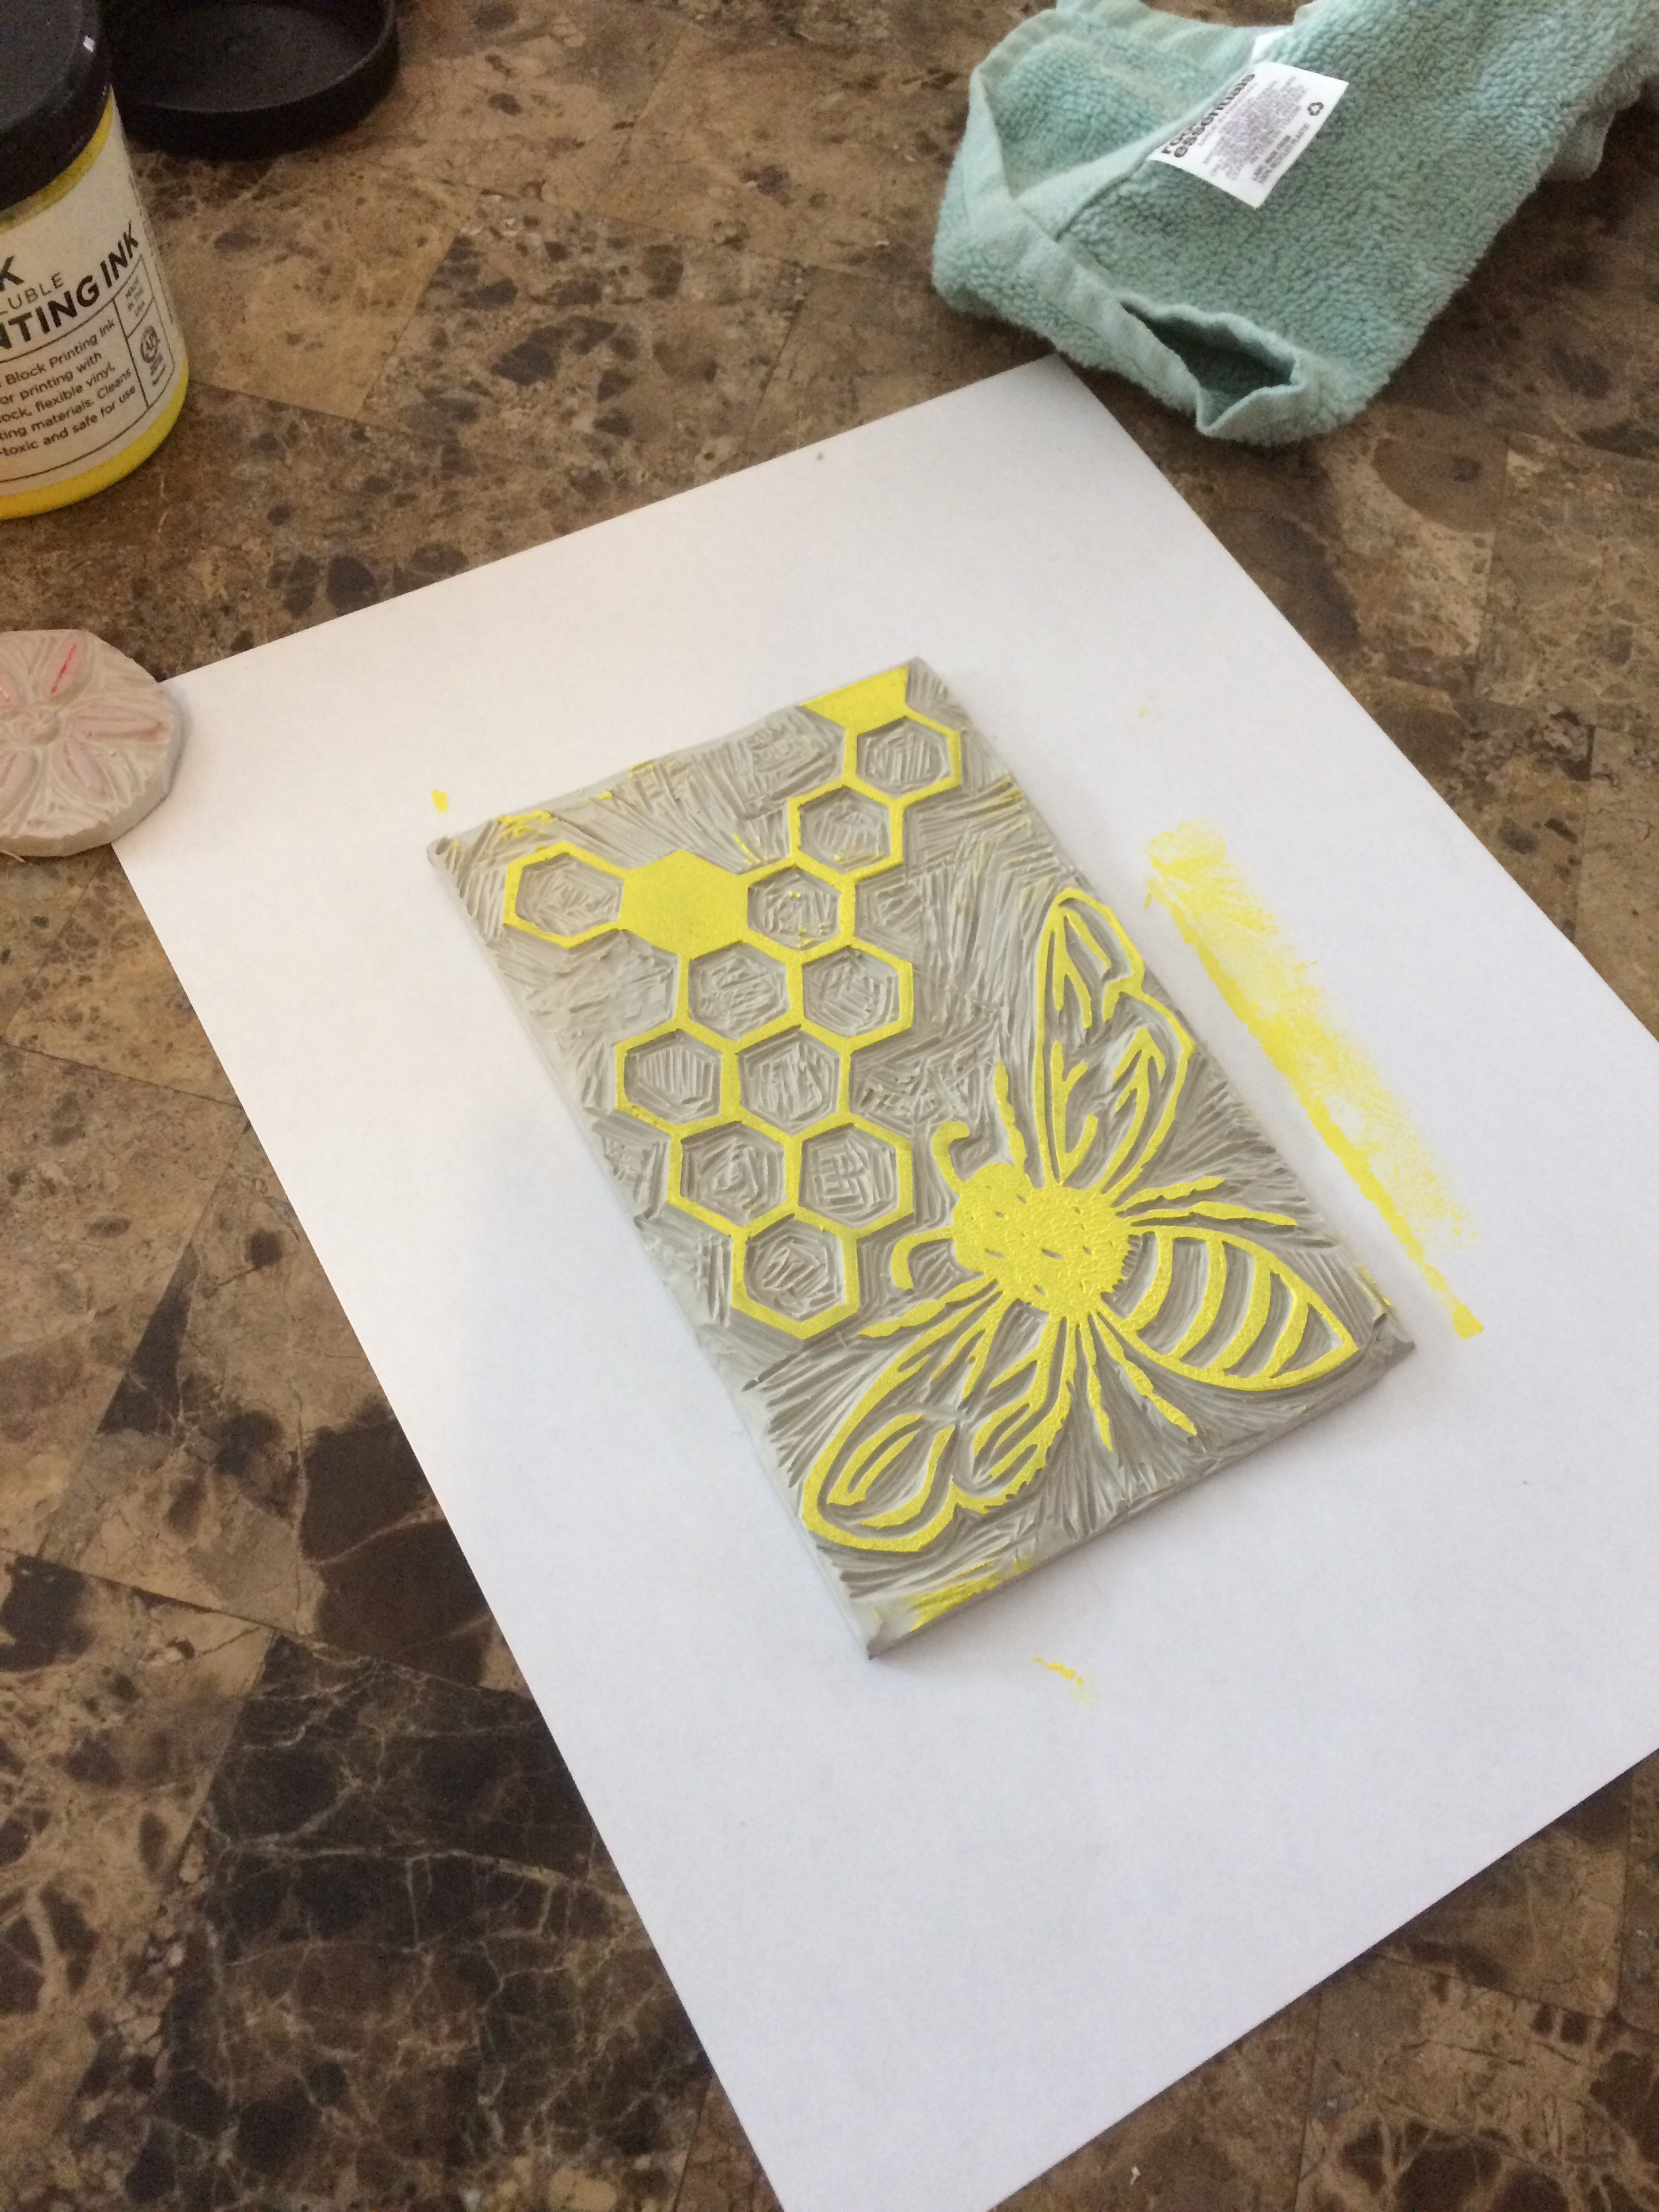 Dabble Drop-In: Card Printing, Linoleum Block Printmaking with Katie Netti